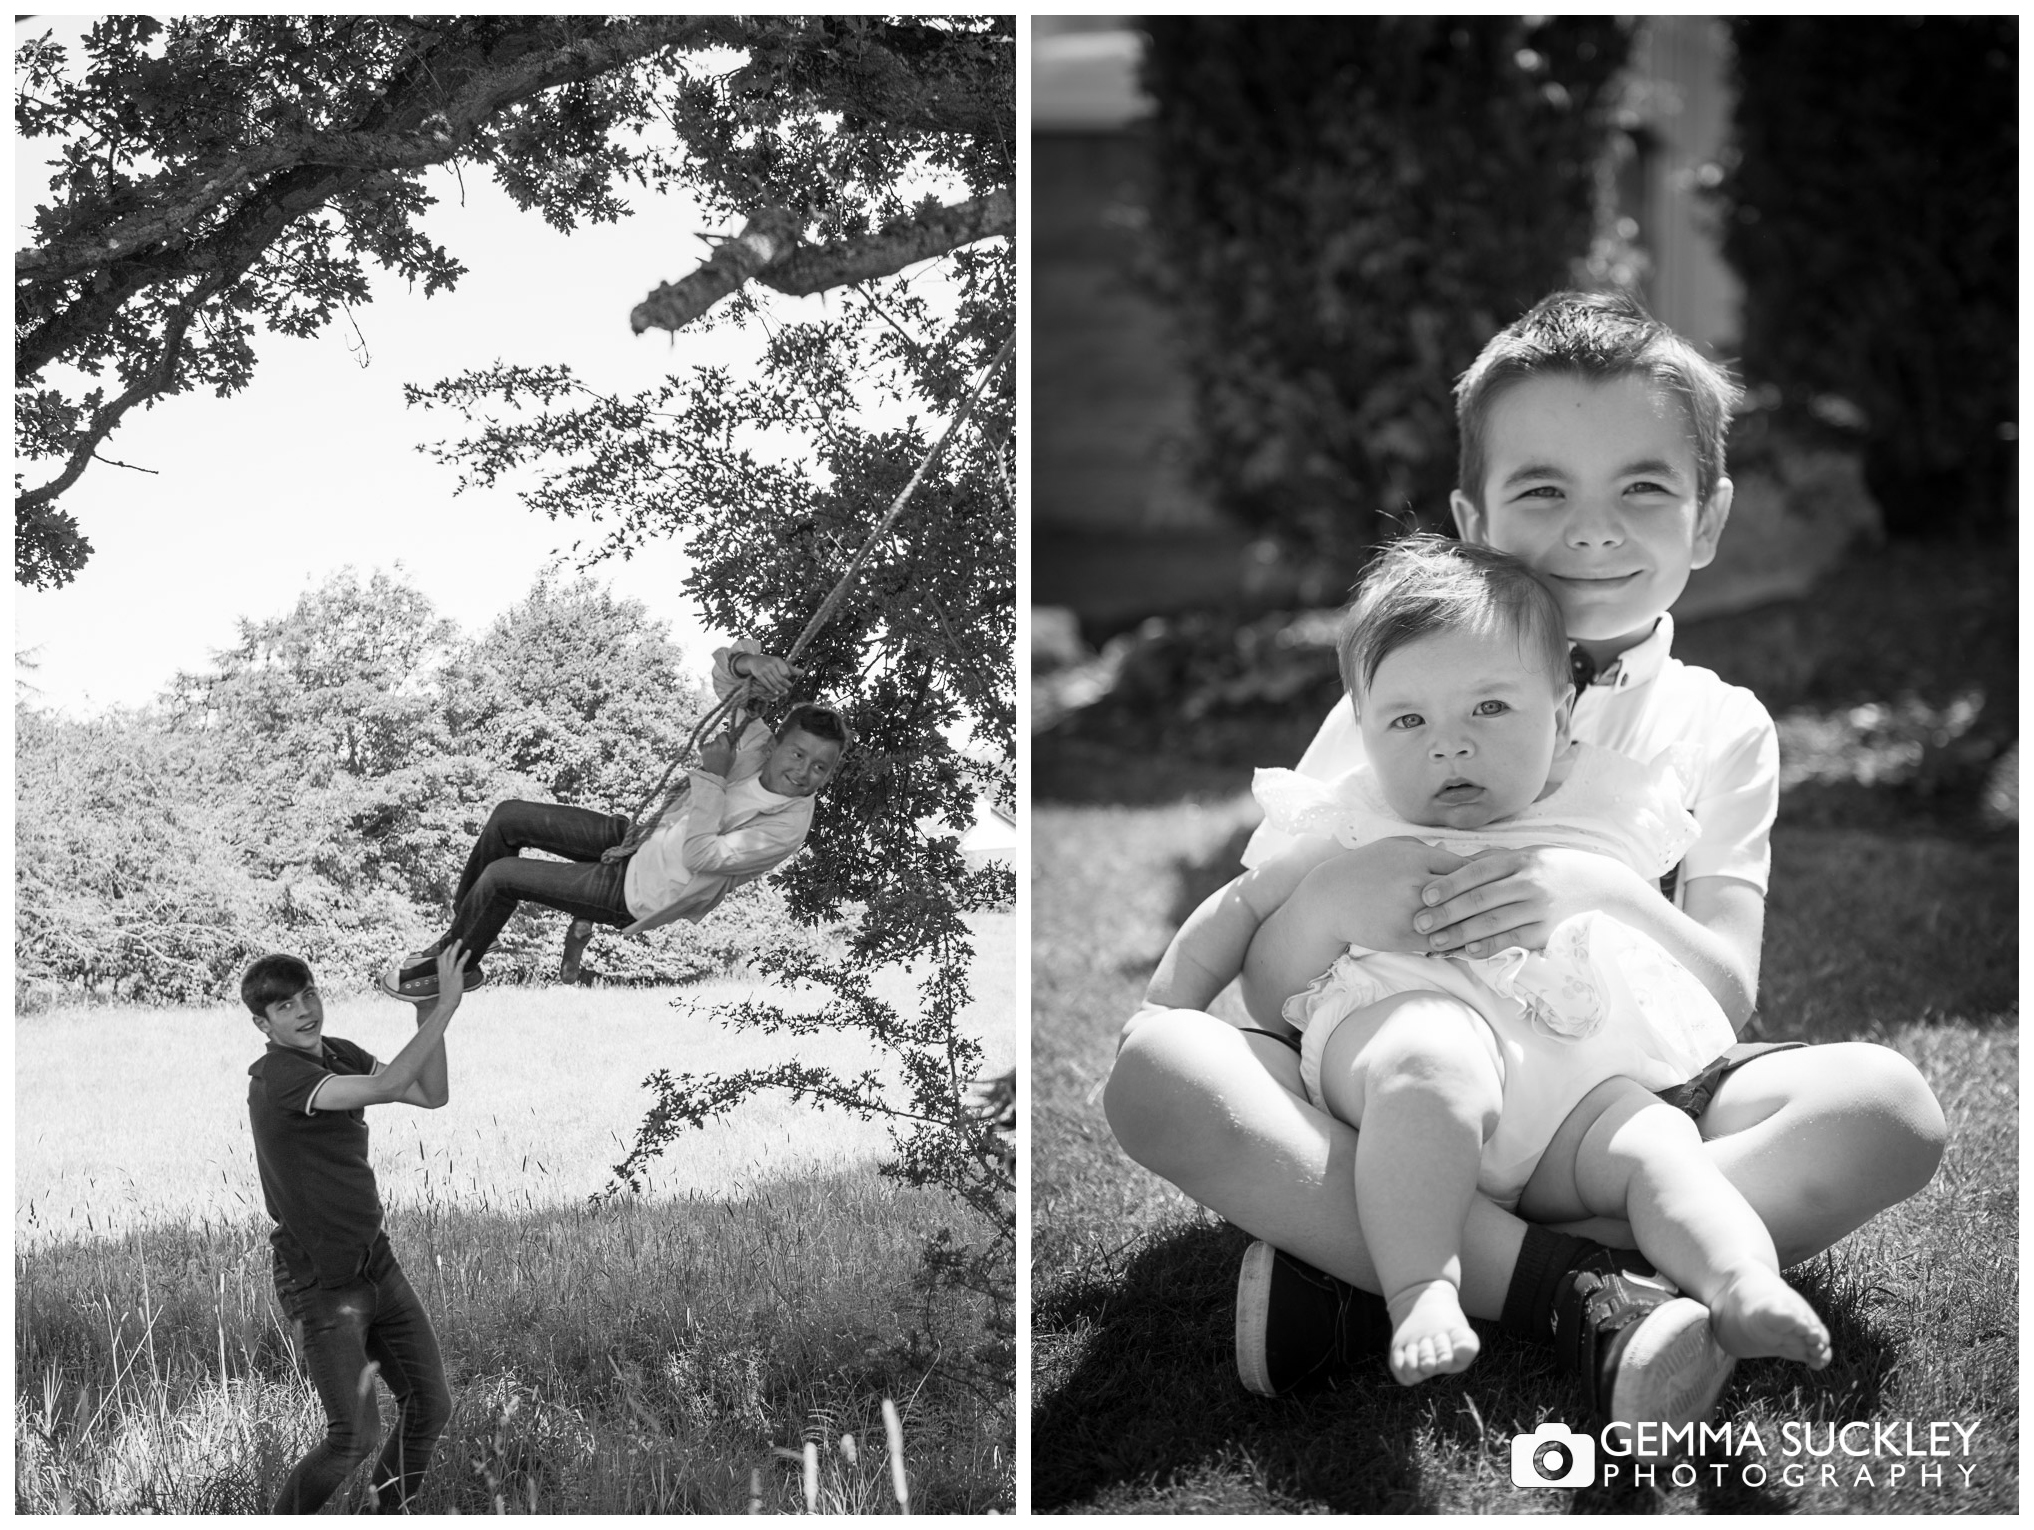 kids playing during natural outdoor family photo shoot In Menston